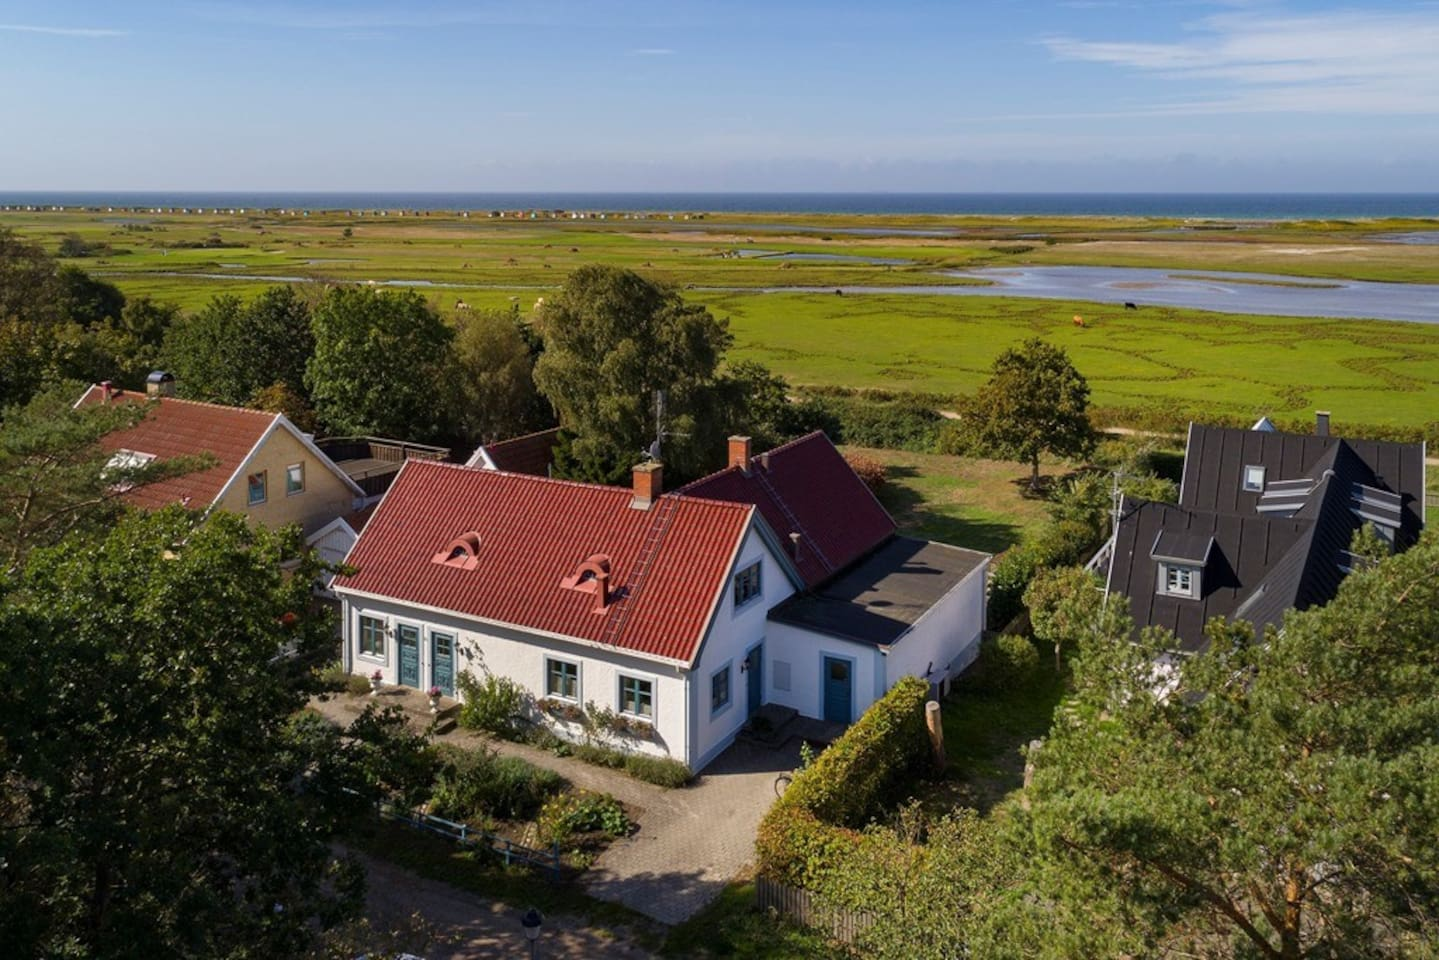 The house from a drone